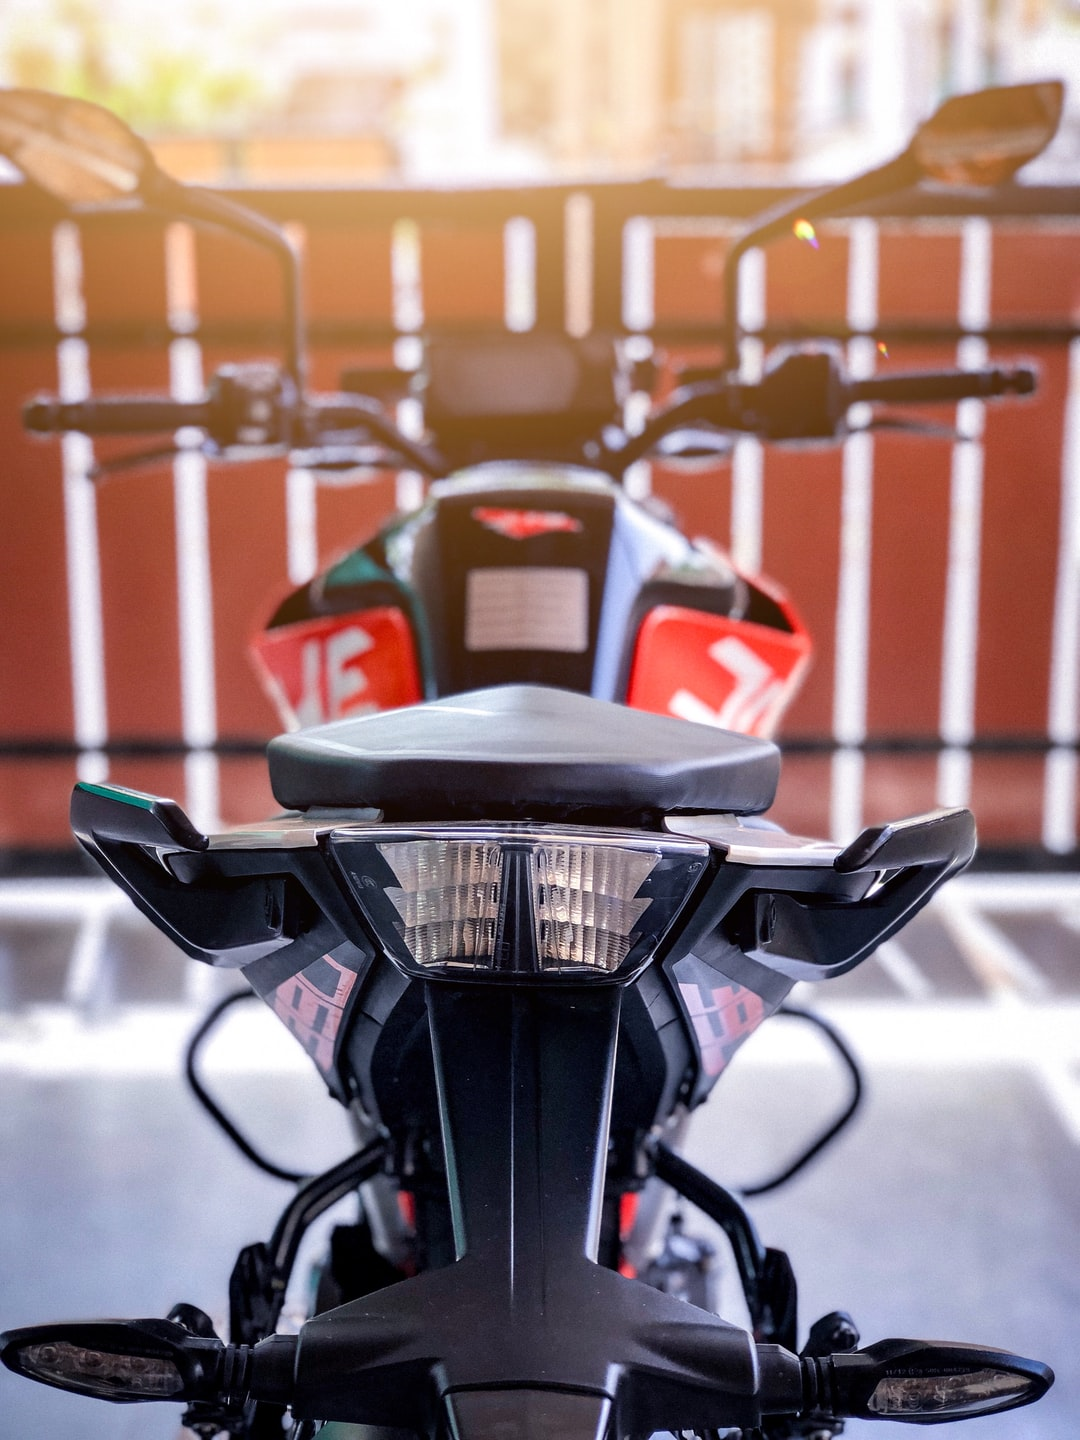 Ktm Duke Pictures | Download Free Images on Unsplash